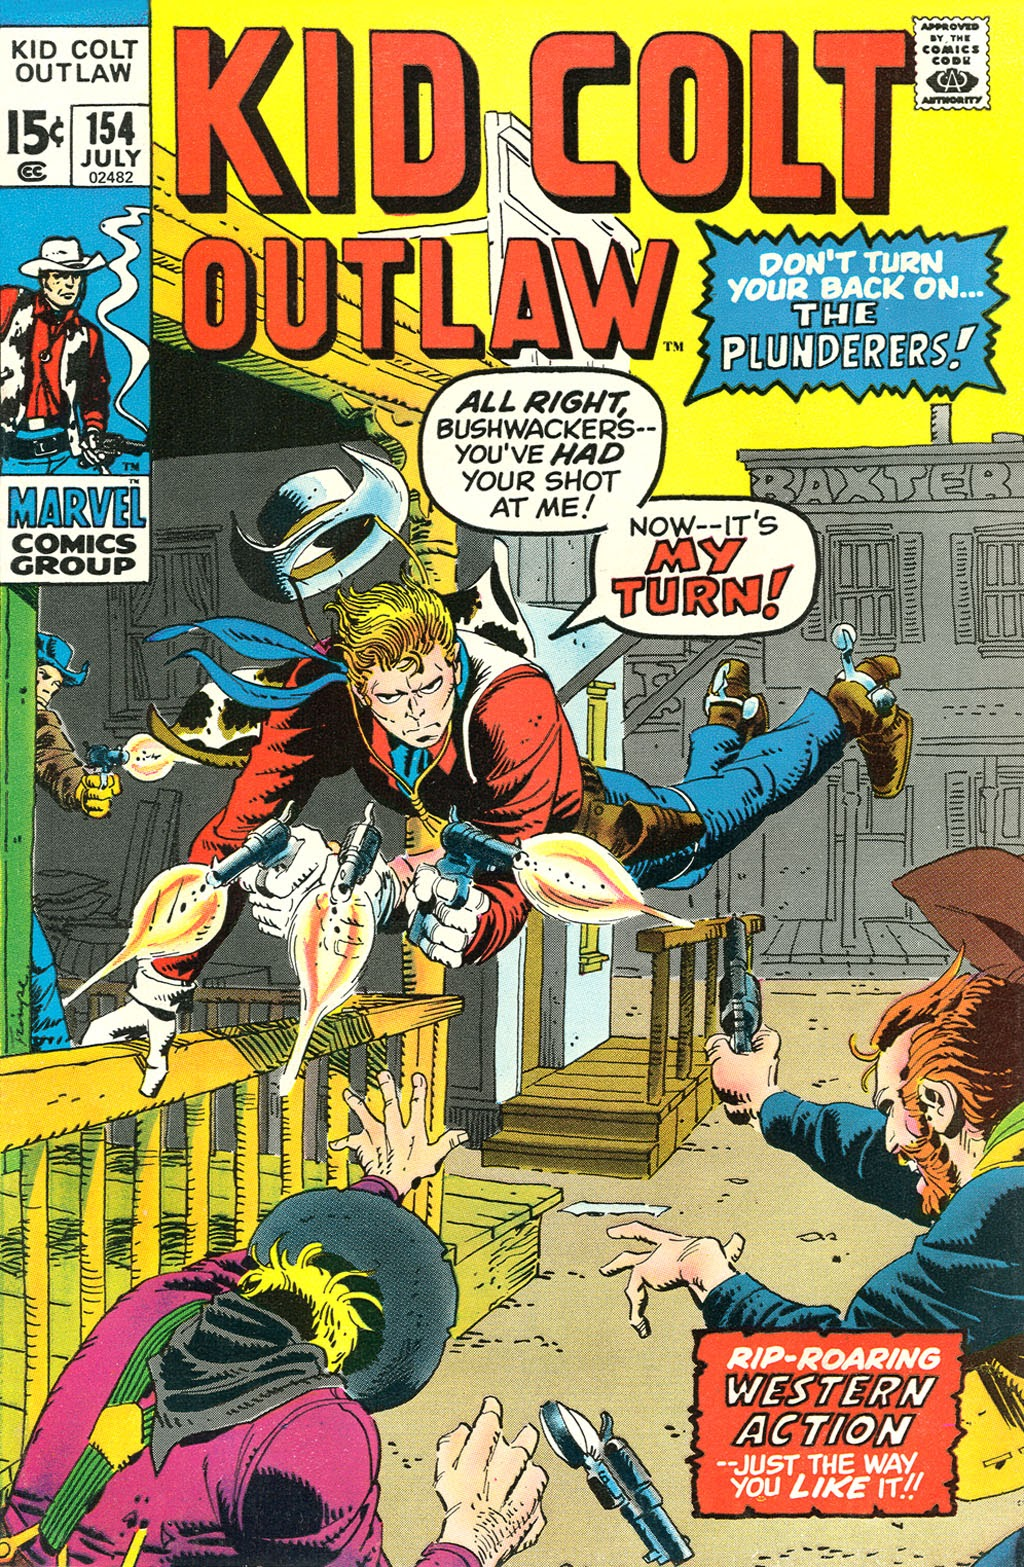 Kid Colt Outlaw issue 154 - Page 1